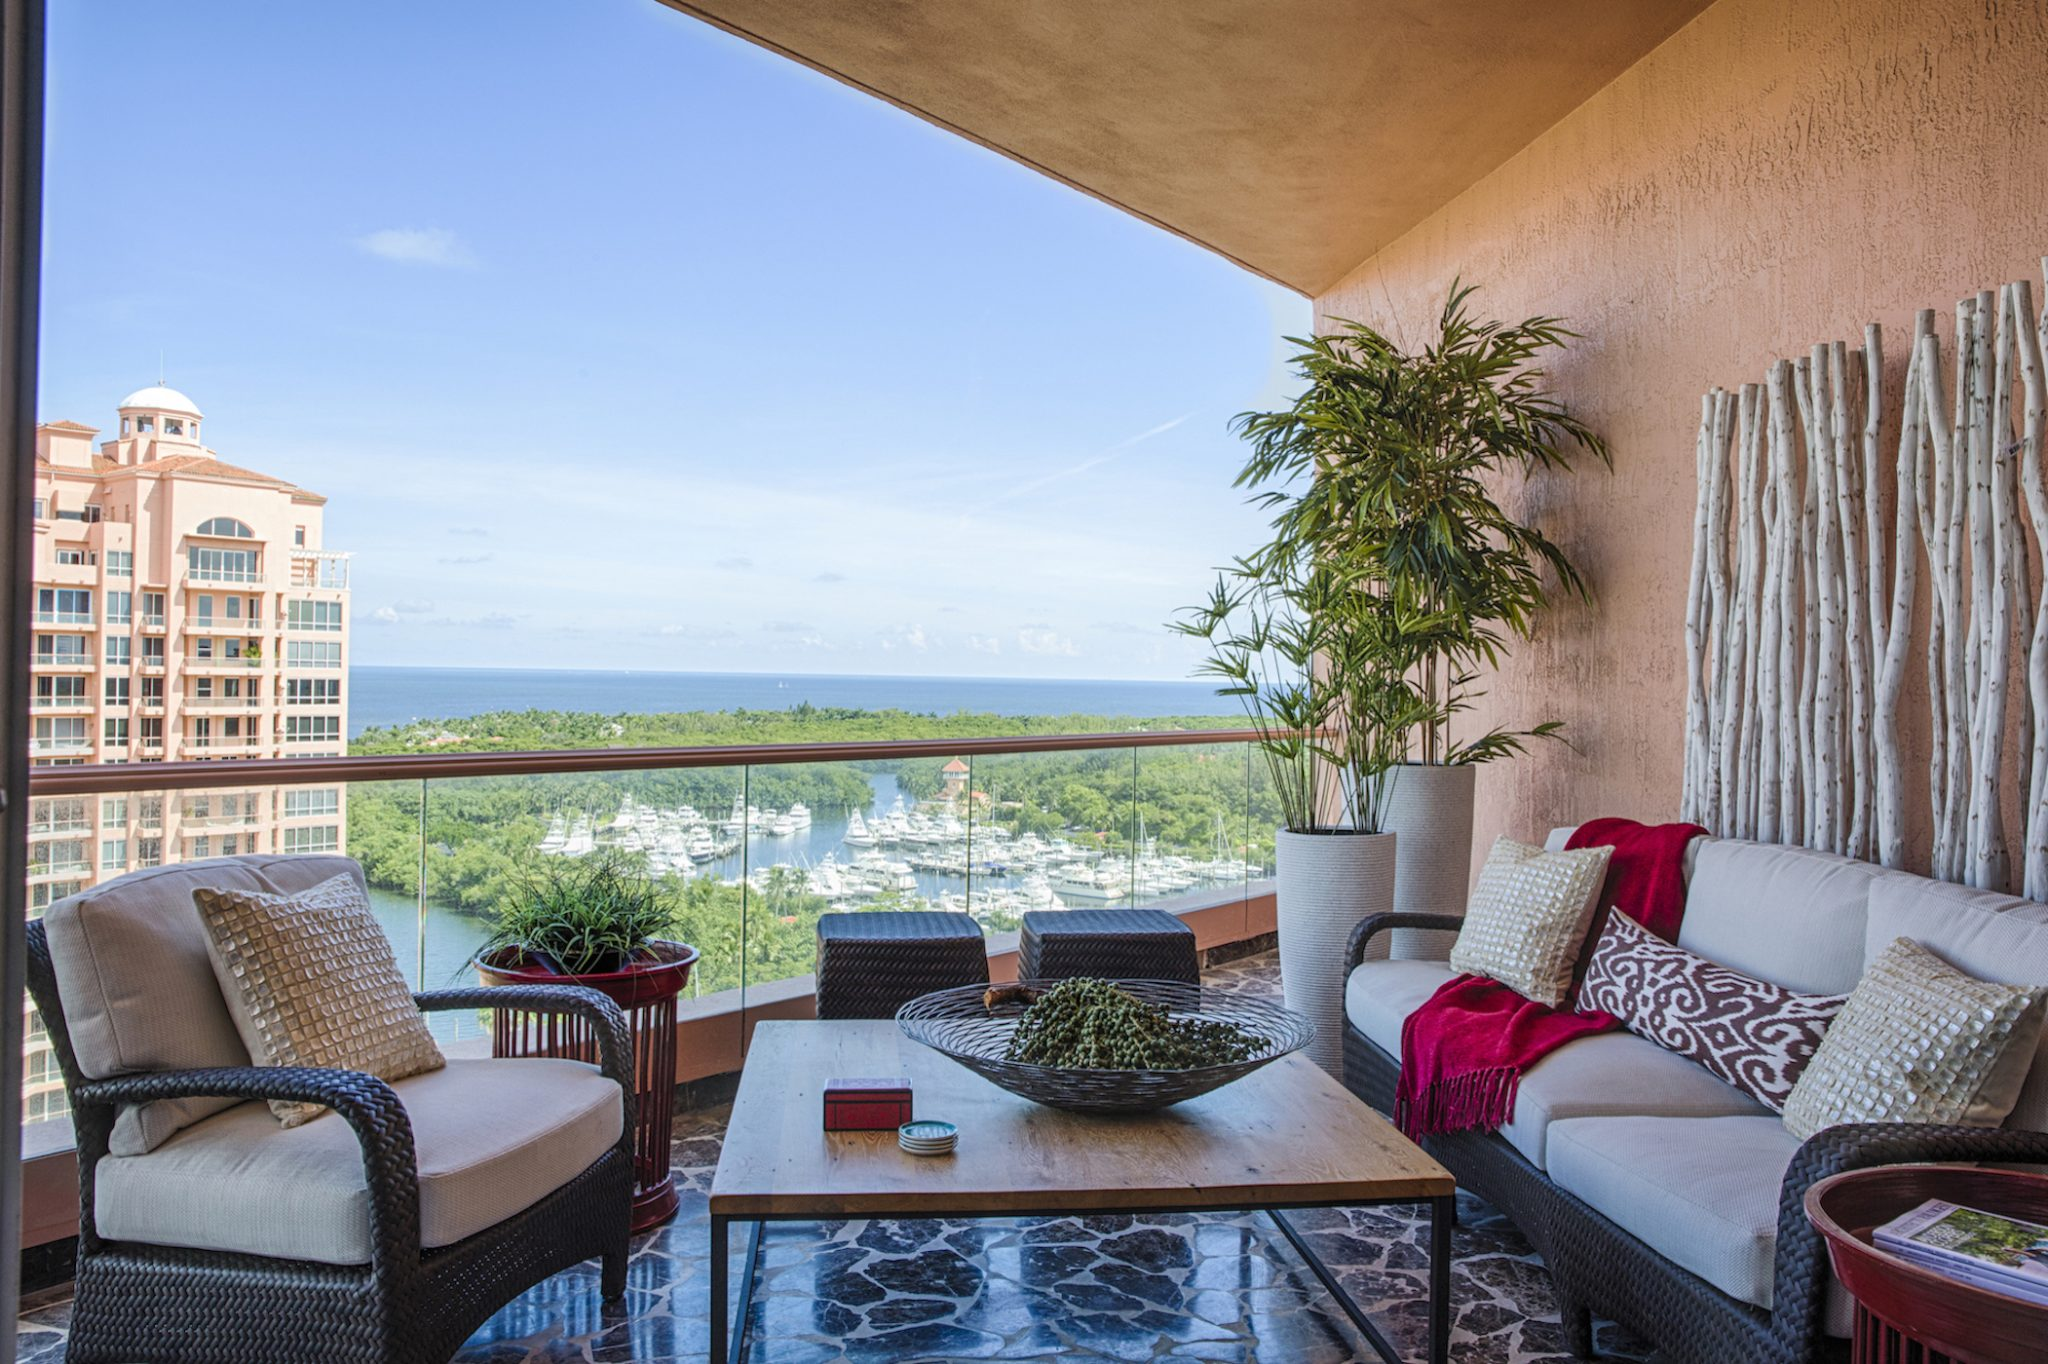 This penthouse overlooks Biscayne Bay, with an indoor/outdoor vibe. By Taylor & Taylor